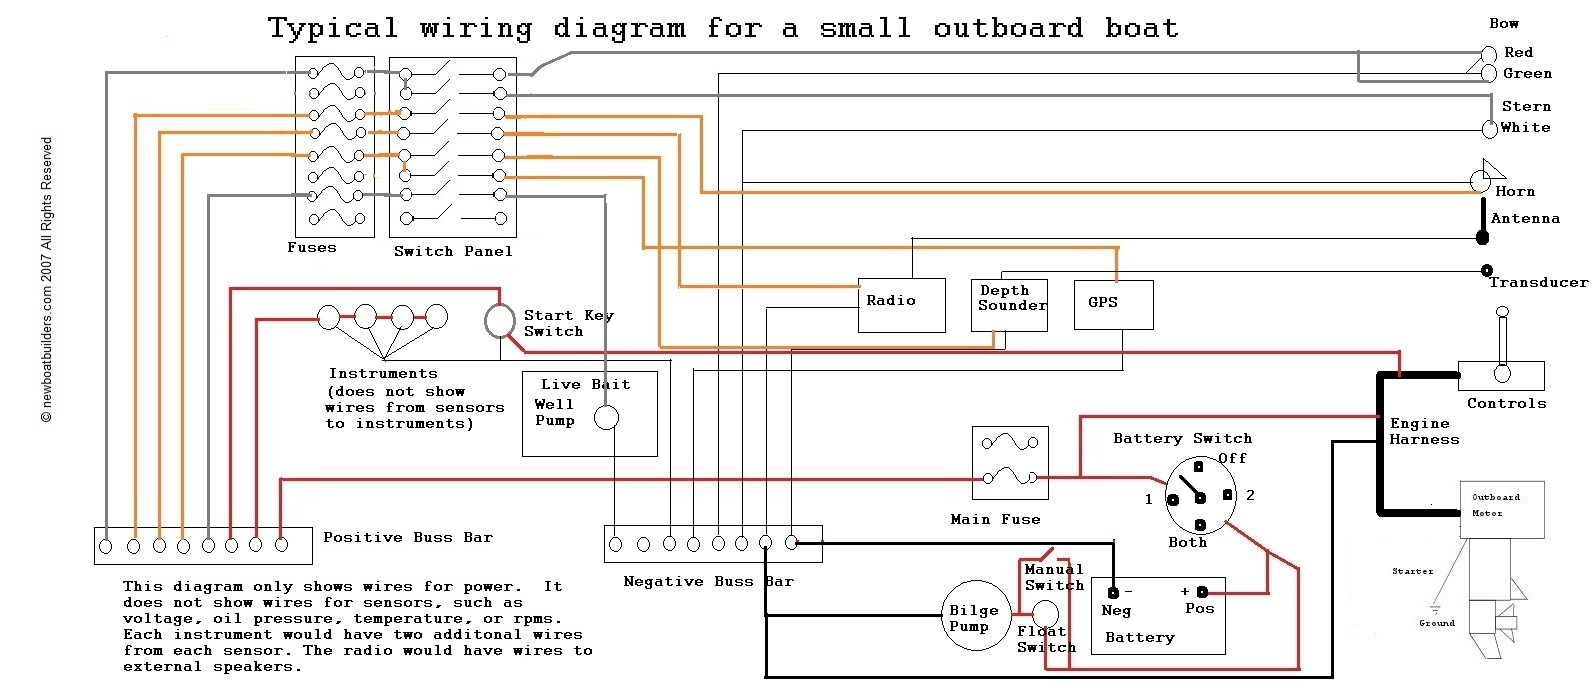 hight resolution of wiring diagram boat simple wiring diagram rh david huggett co uk electrical wiring diagram of building